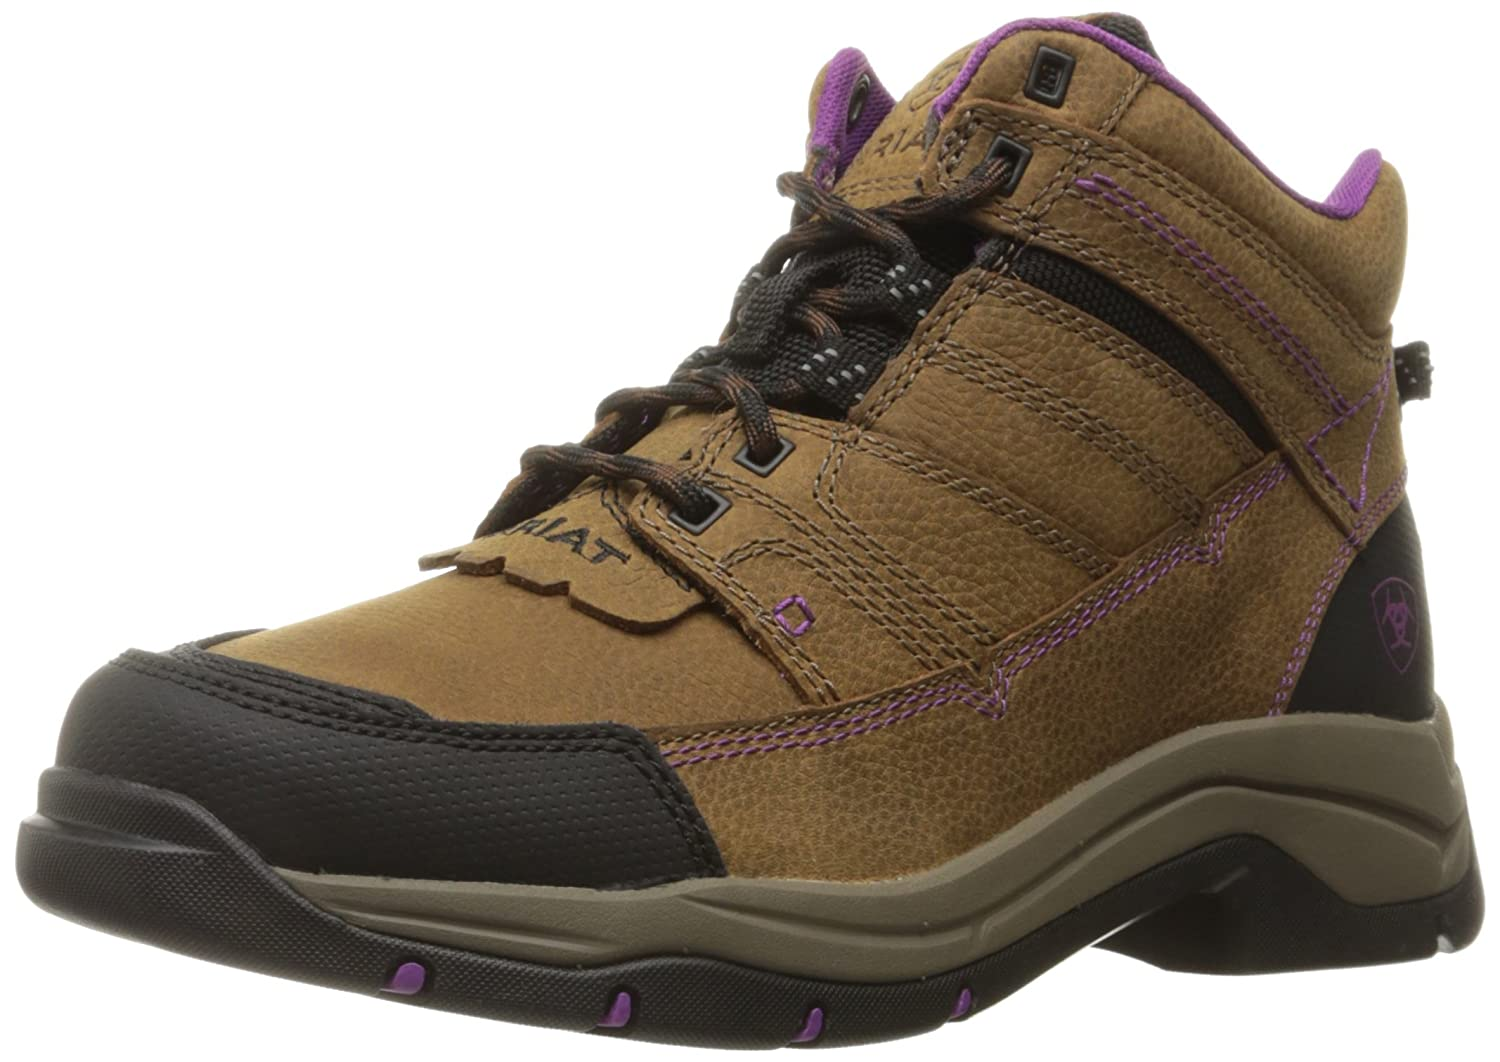 Amazon.com: Ariat Women's - Terrain Hiking Boot: Ariat: Shoes